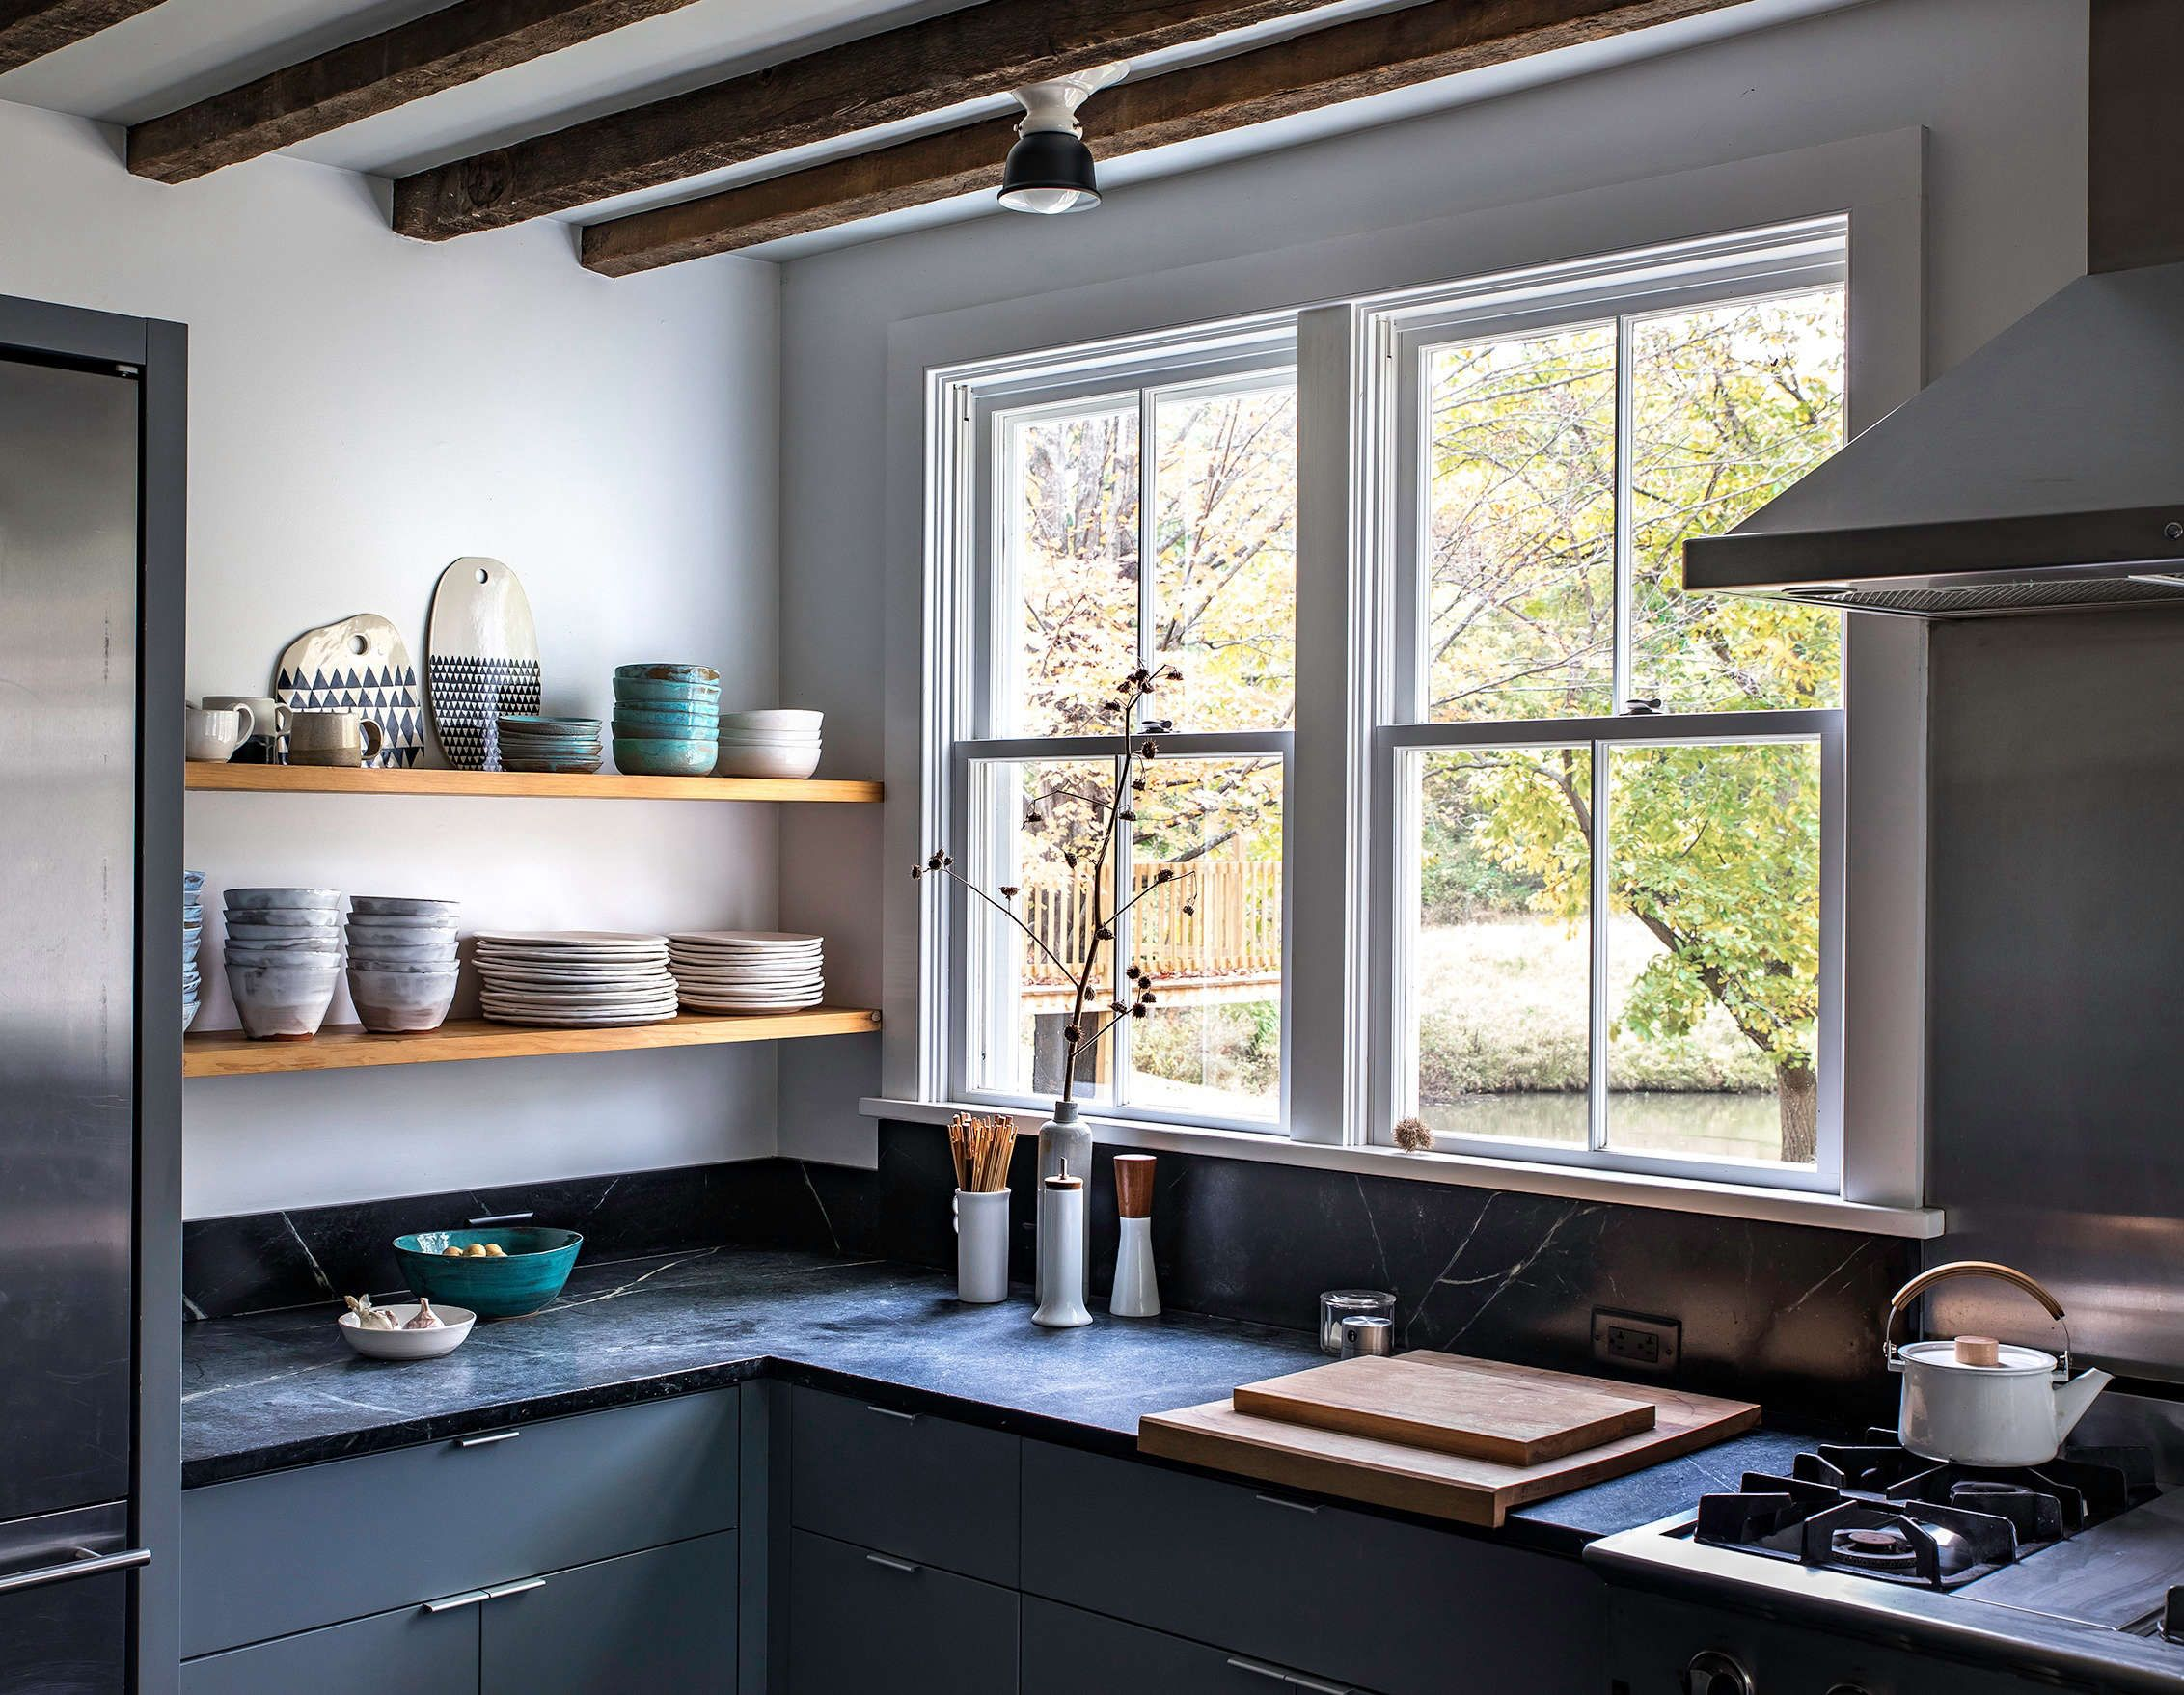 Soapstone Counters: Are They Worth It?